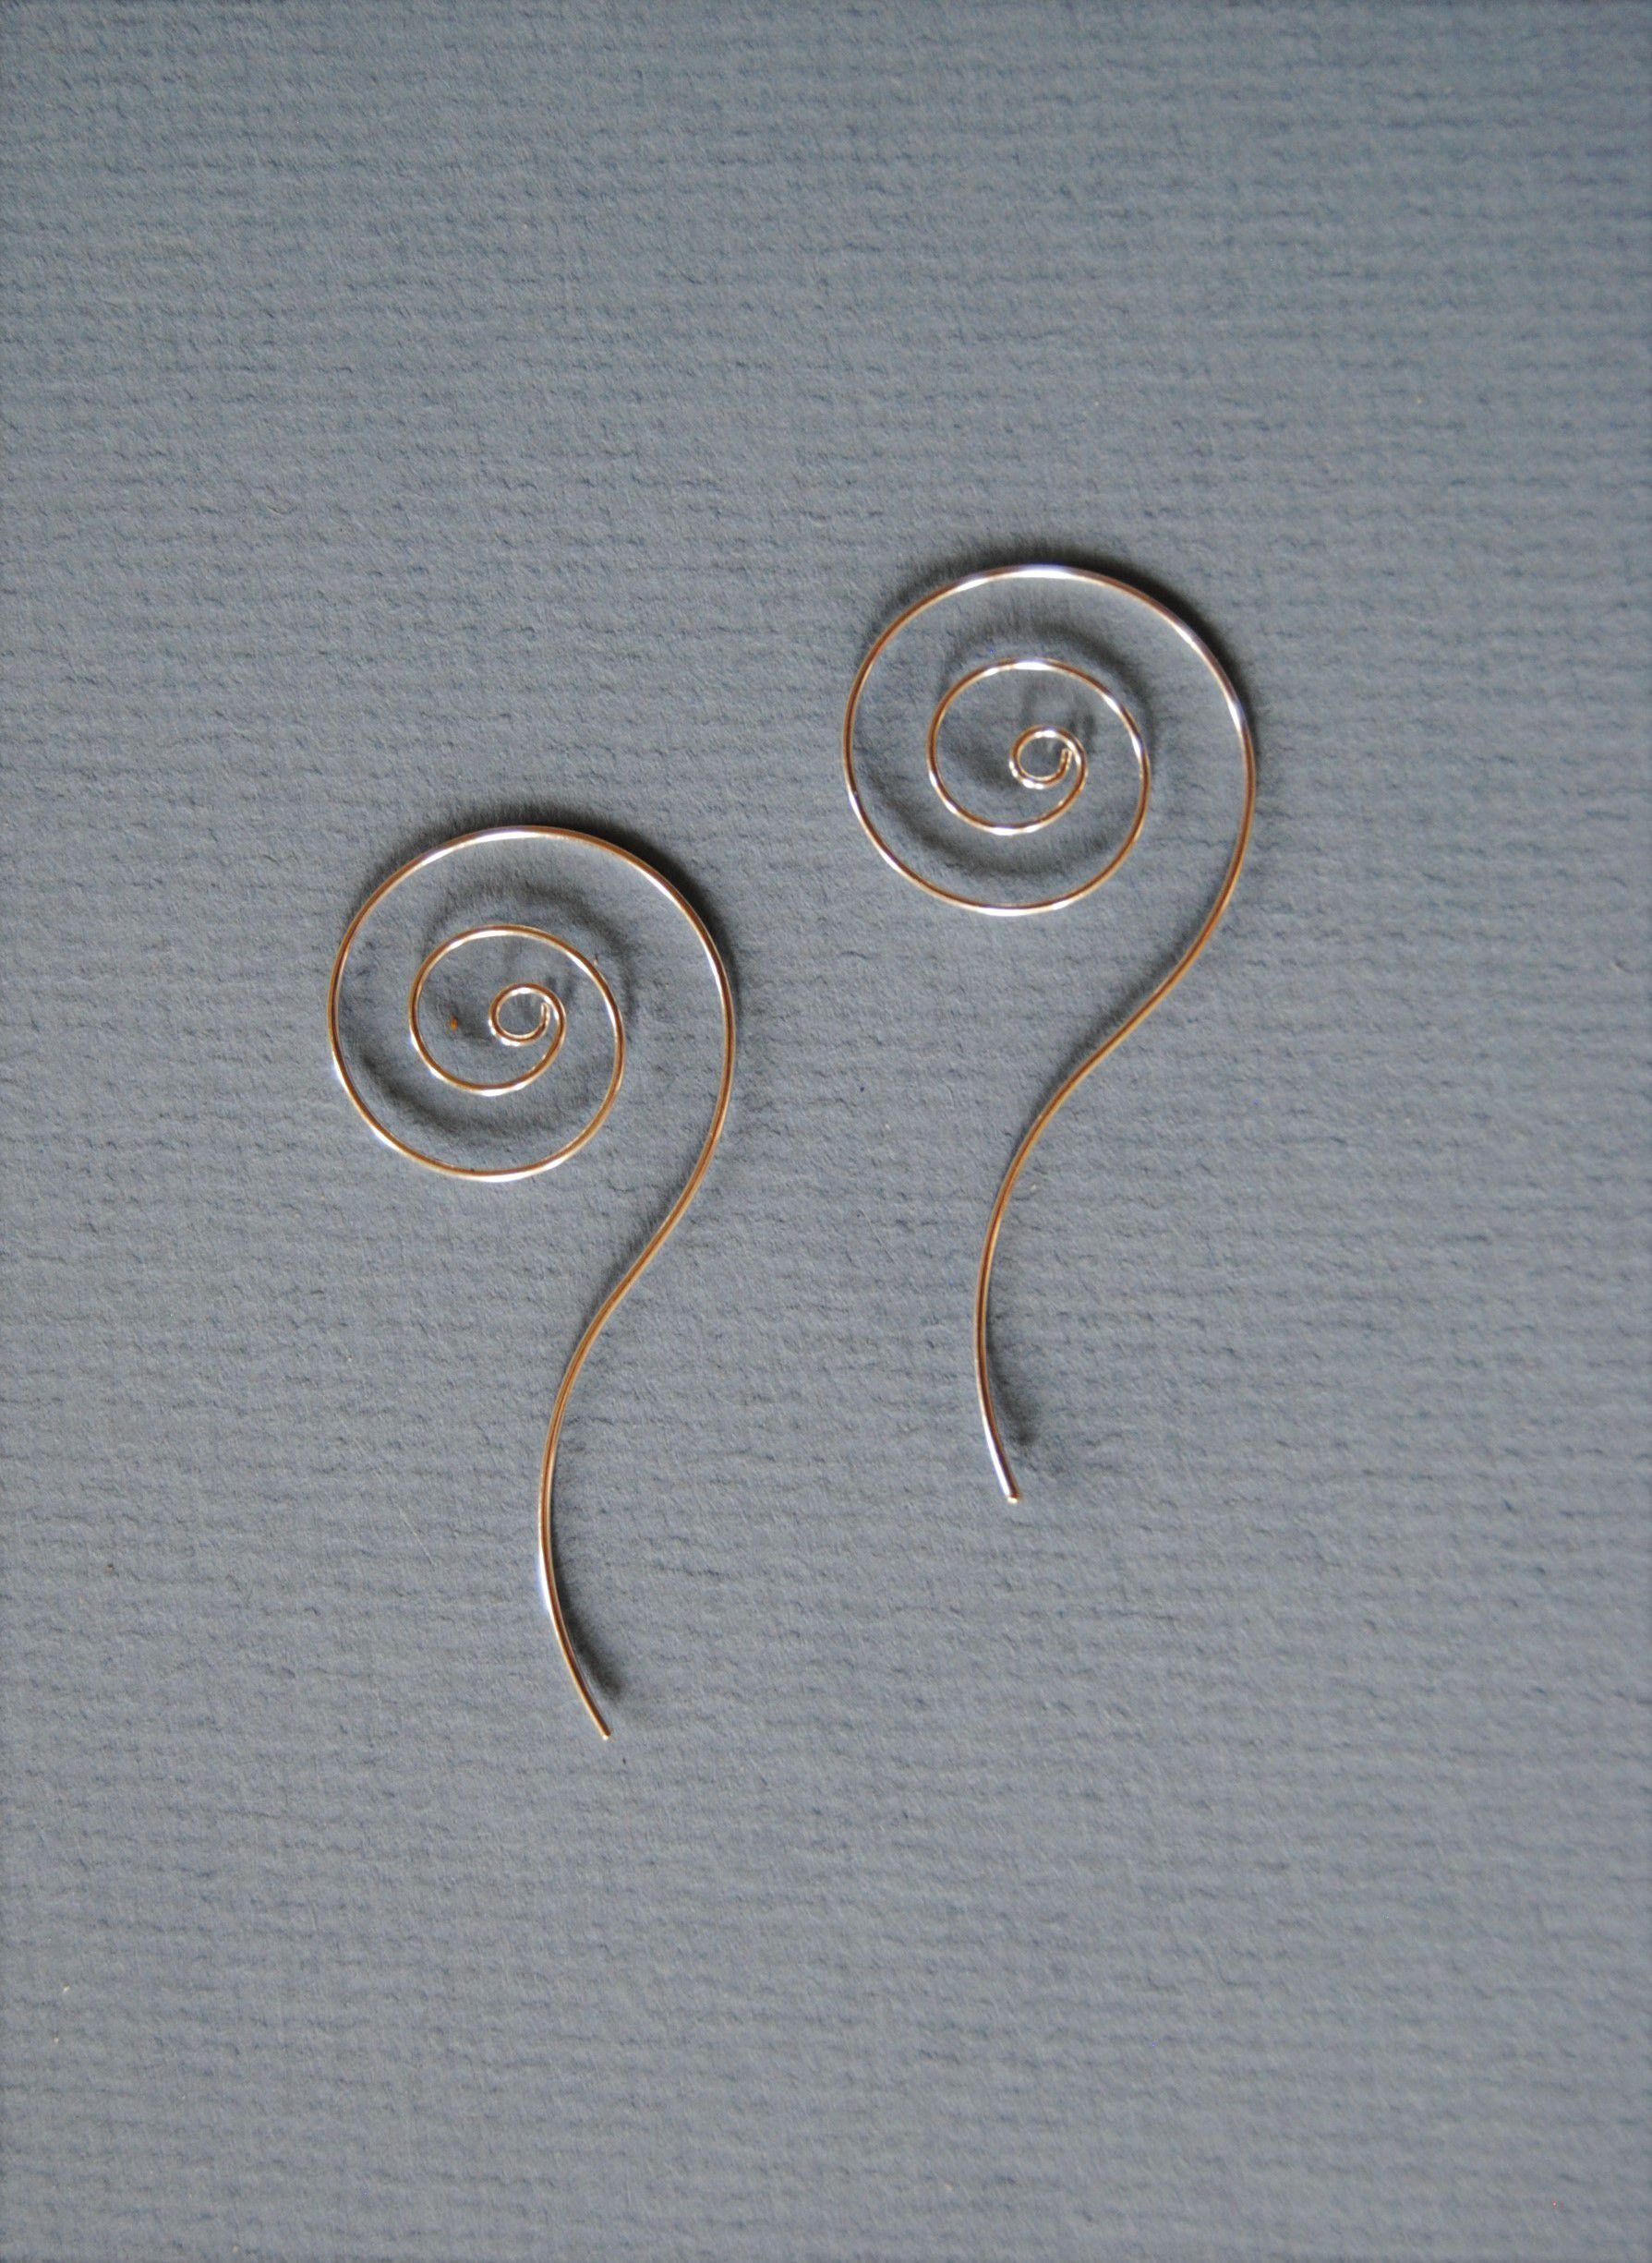 Spirals for women - what is it